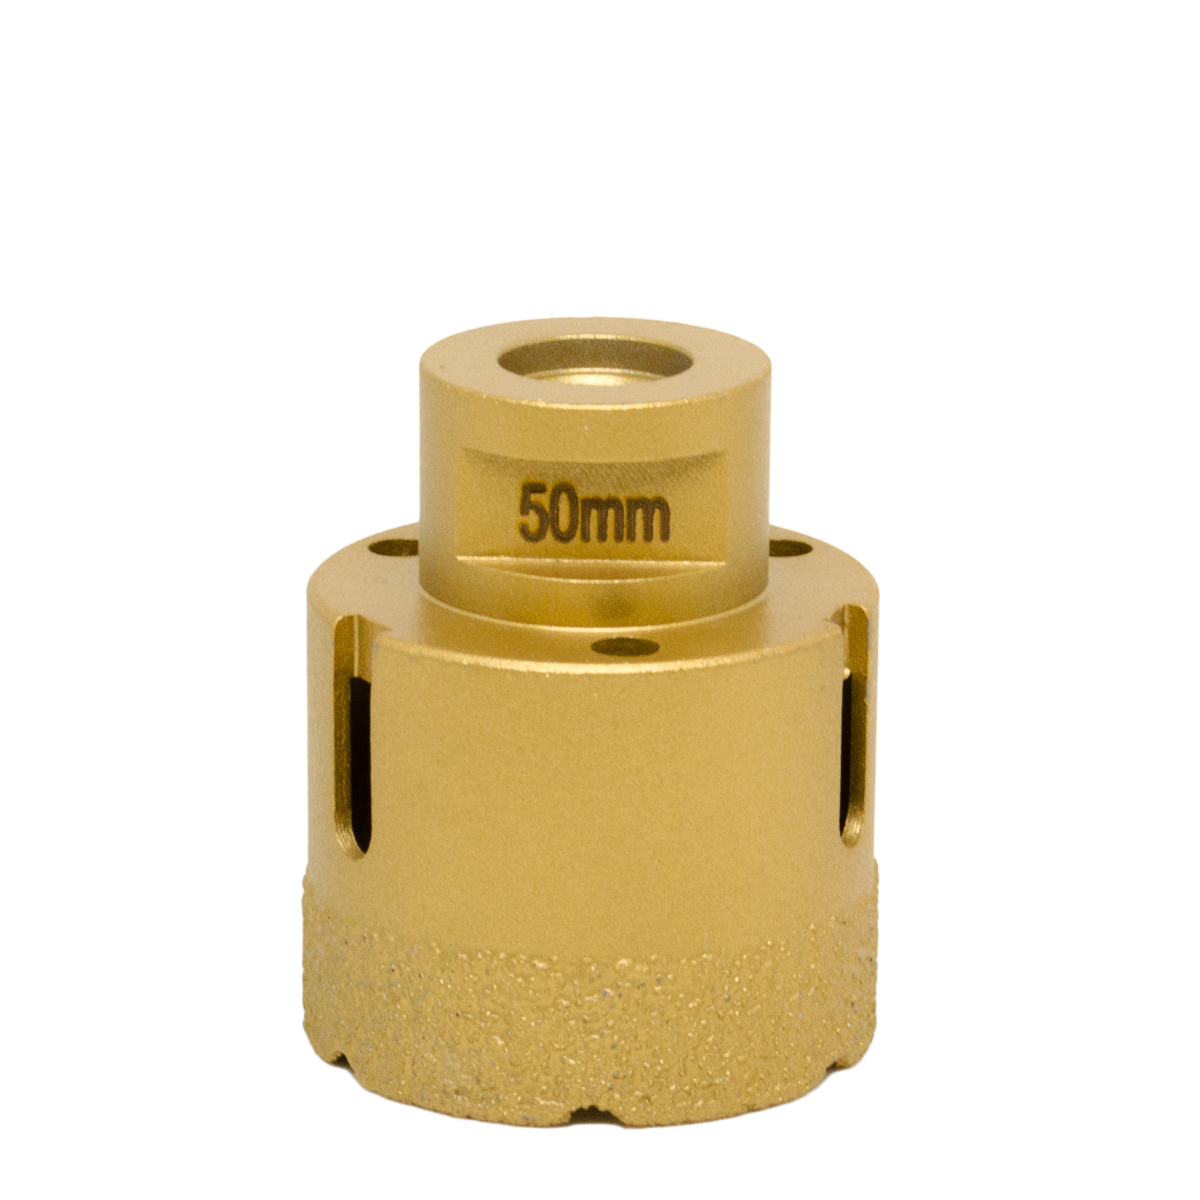 M14 Angle Grinder Spindle 50 Mm Diamond Core Drill Bit